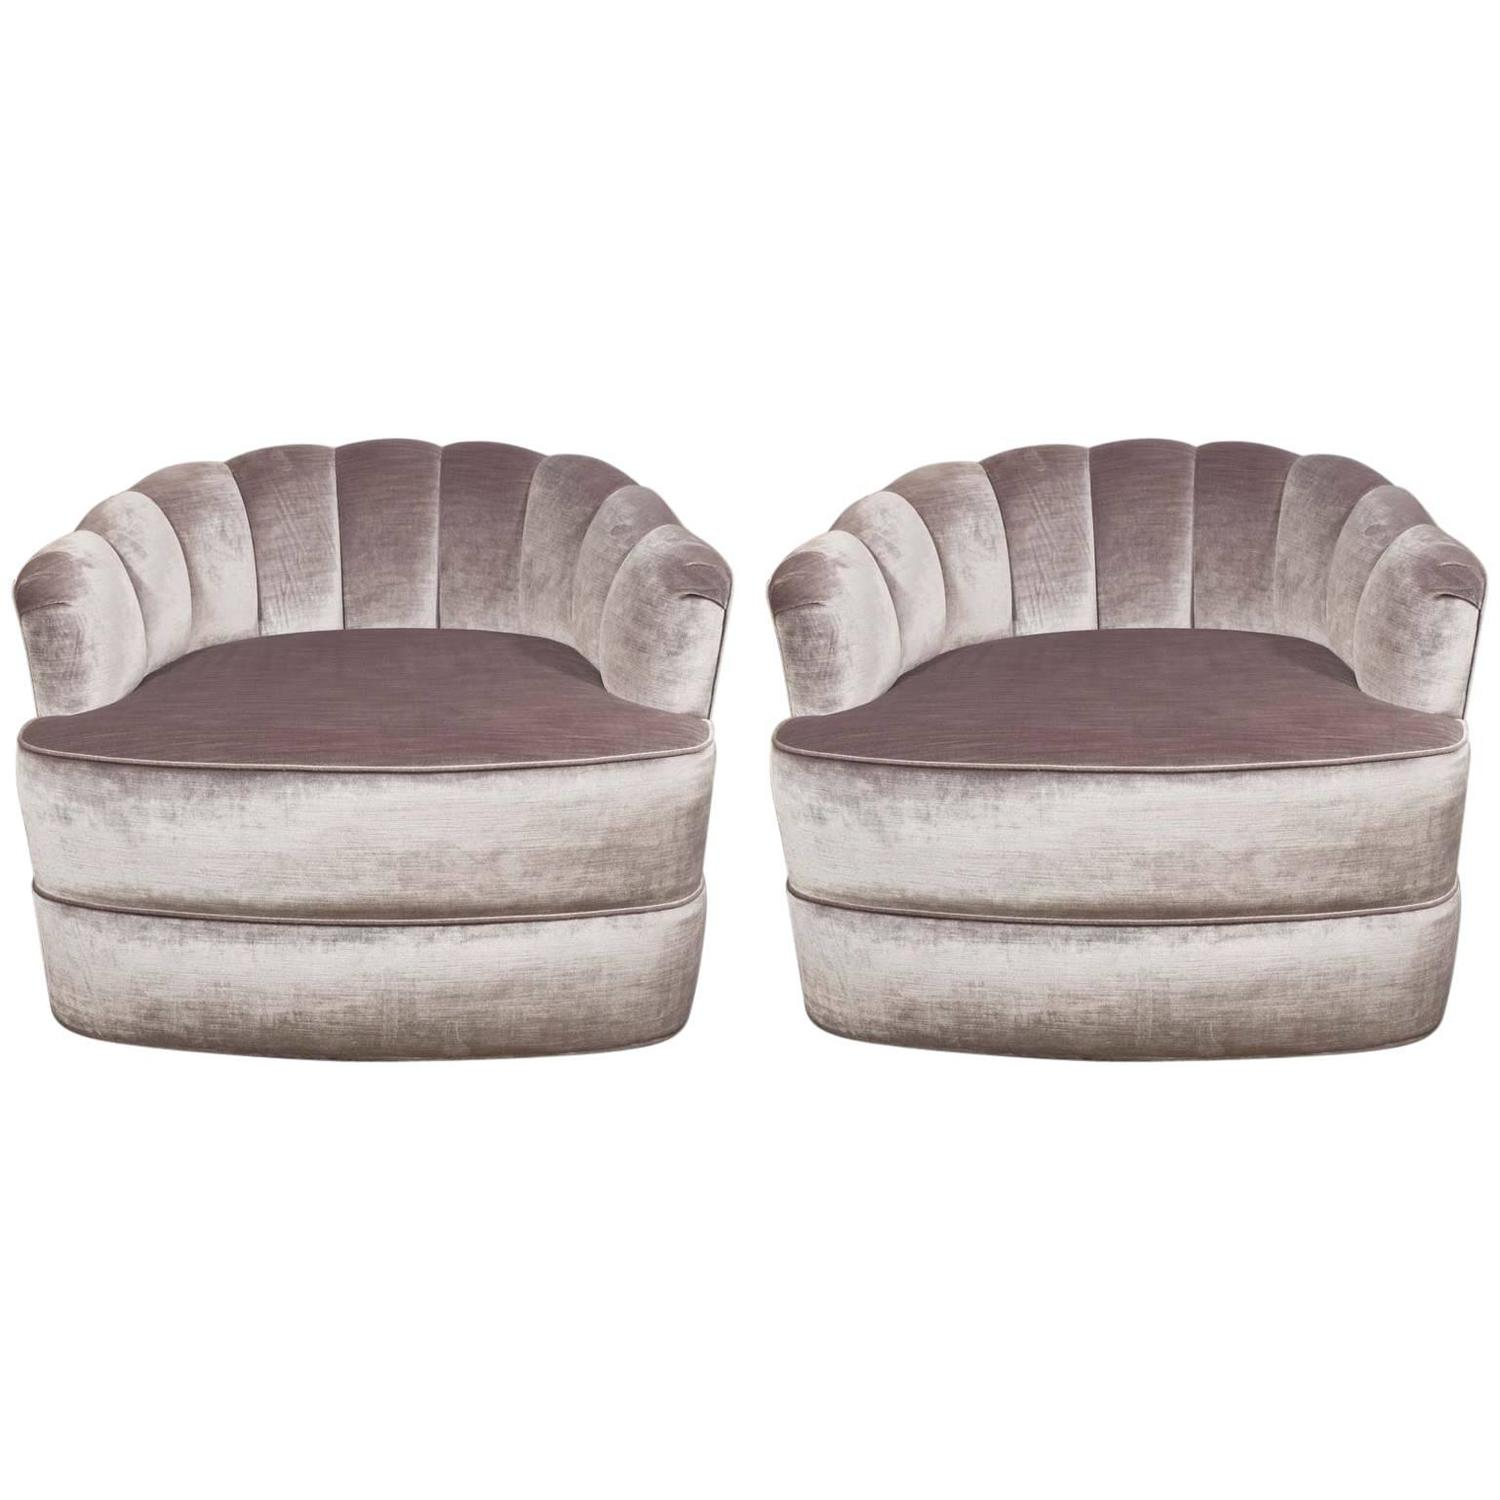 swivel tub chairs andy warhol electric chair pair of 1970s milo baughman channel back